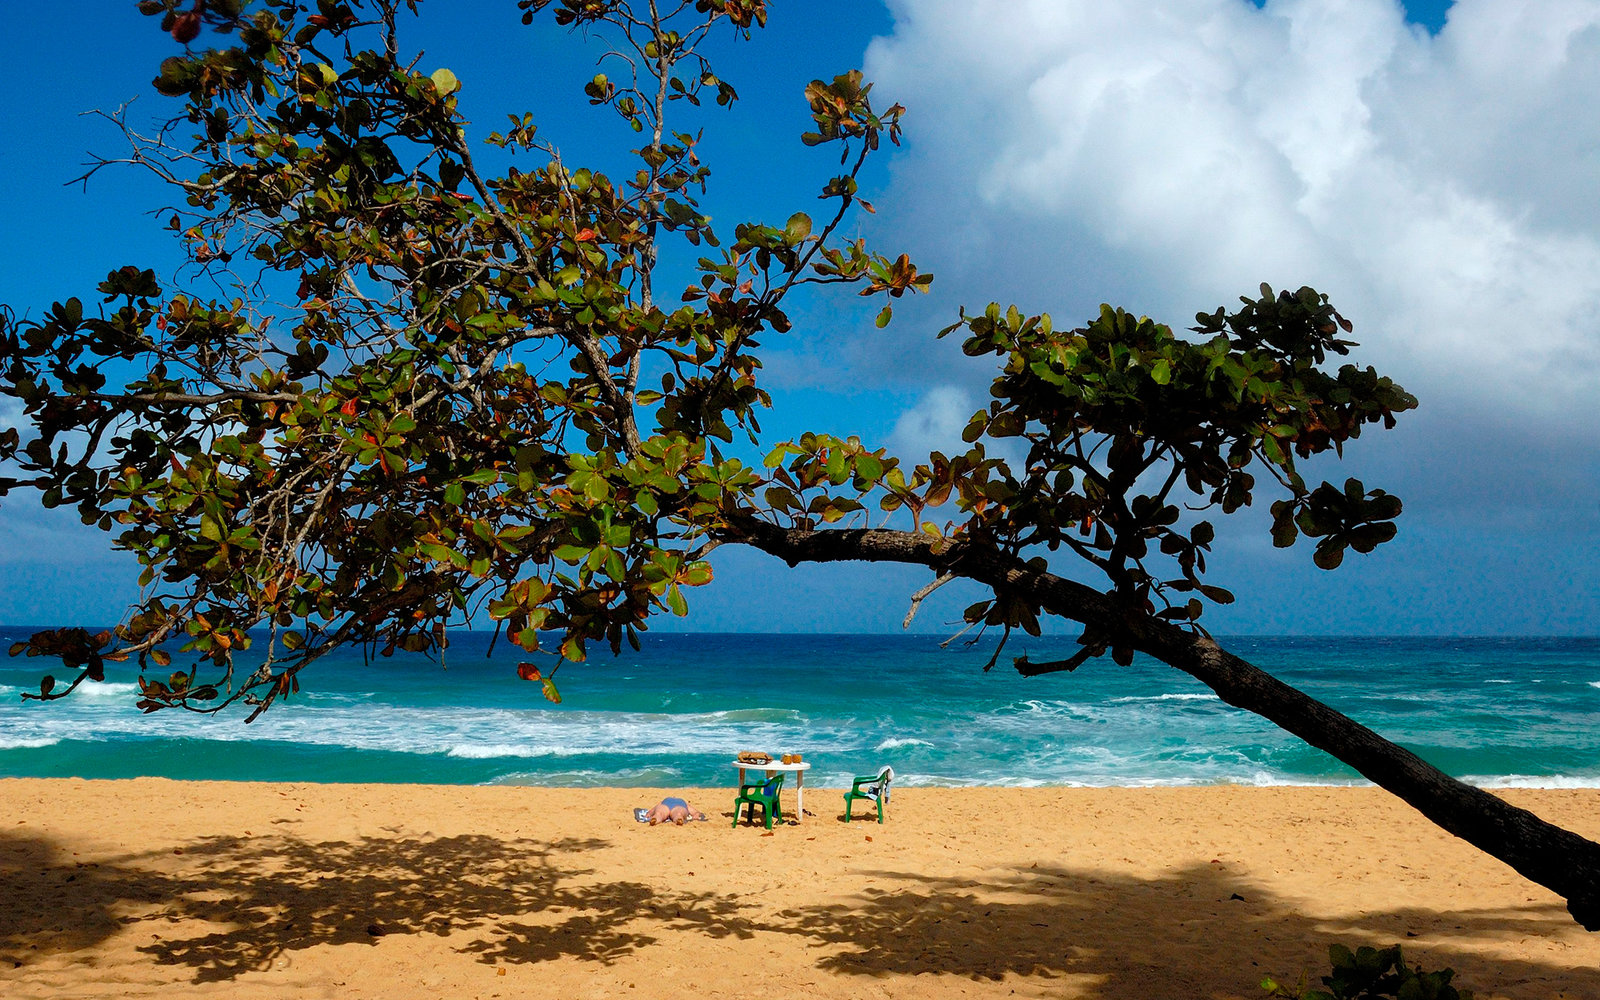 Dominican Republic, Rio San Jan, Playa Grande (Photo by Marka/UIG via Getty Images)